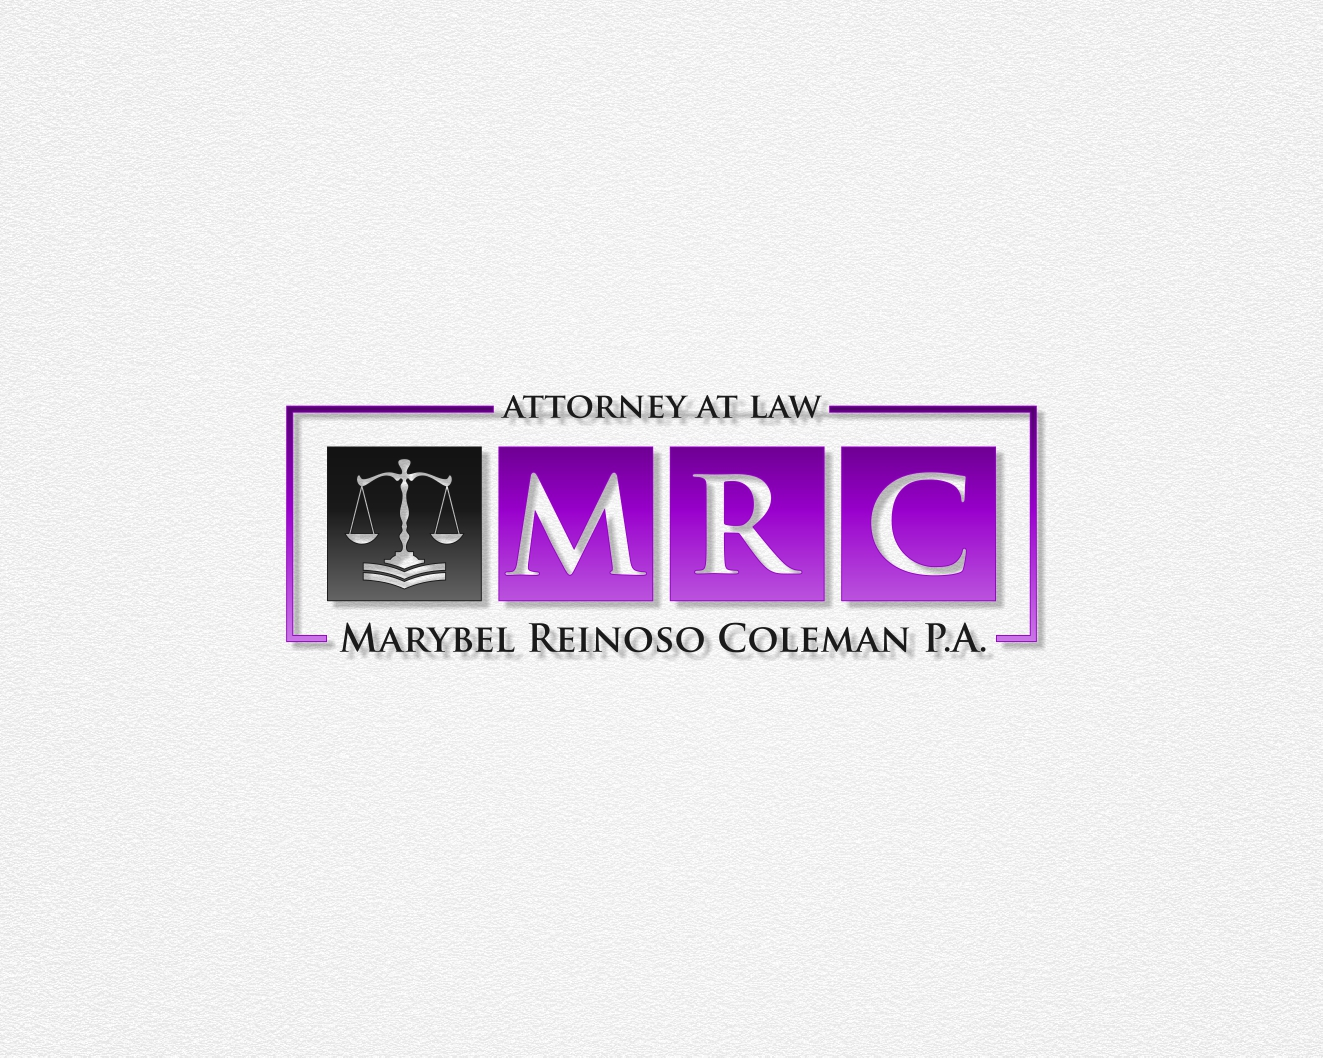 Logo Design by Rares.Andrei - Entry No. 39 in the Logo Design Contest Creative Logo Design for Marybel Reinoso Coleman P.A..